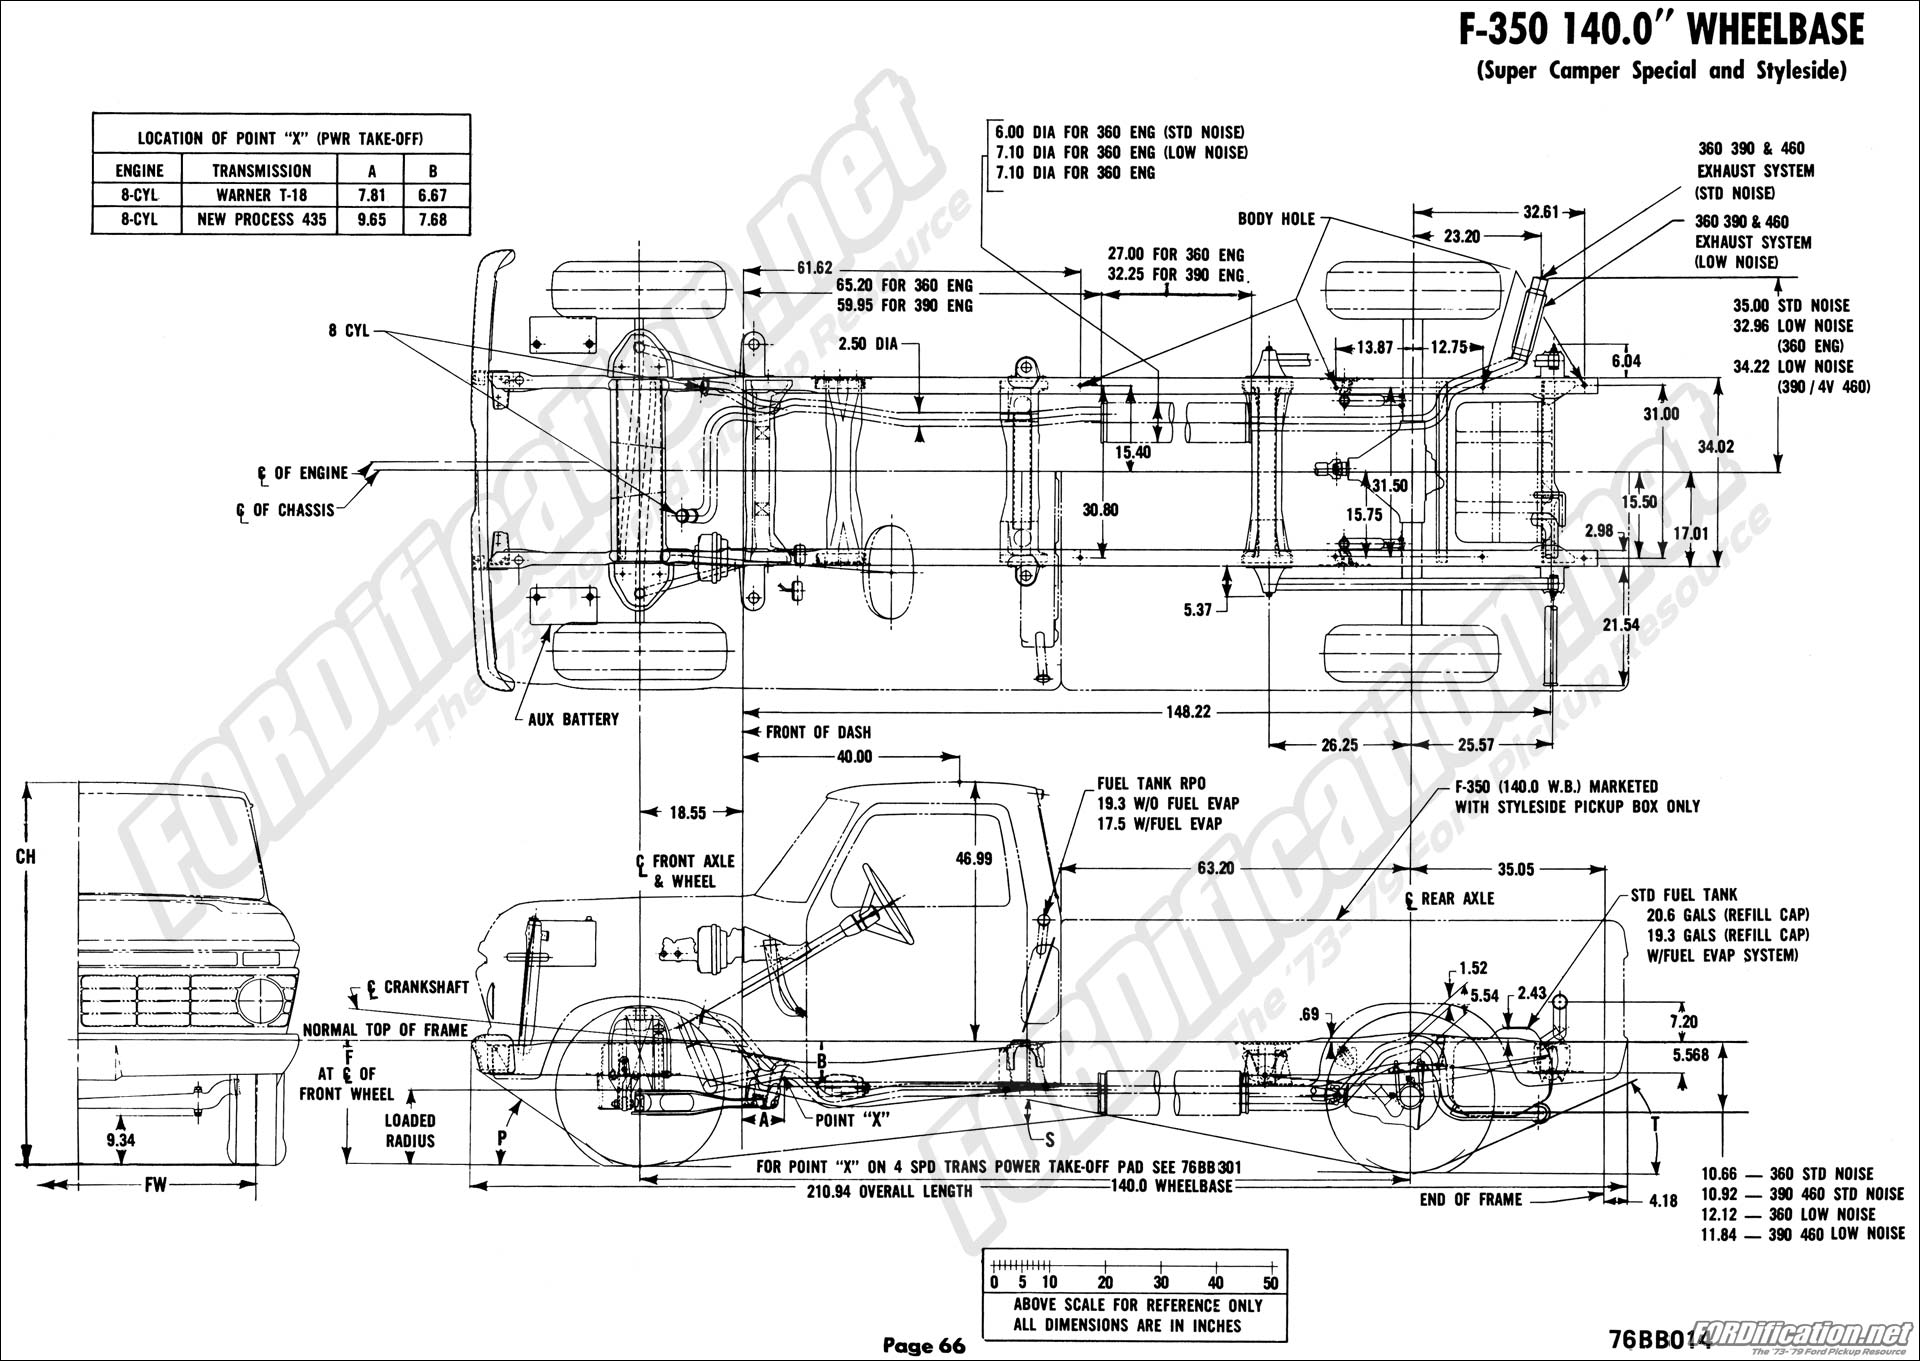 1997 ford f150 fuse panel diagram 2008 gsxr 600 wiring 97 f350 under hood database 13 f550 box best library 2012